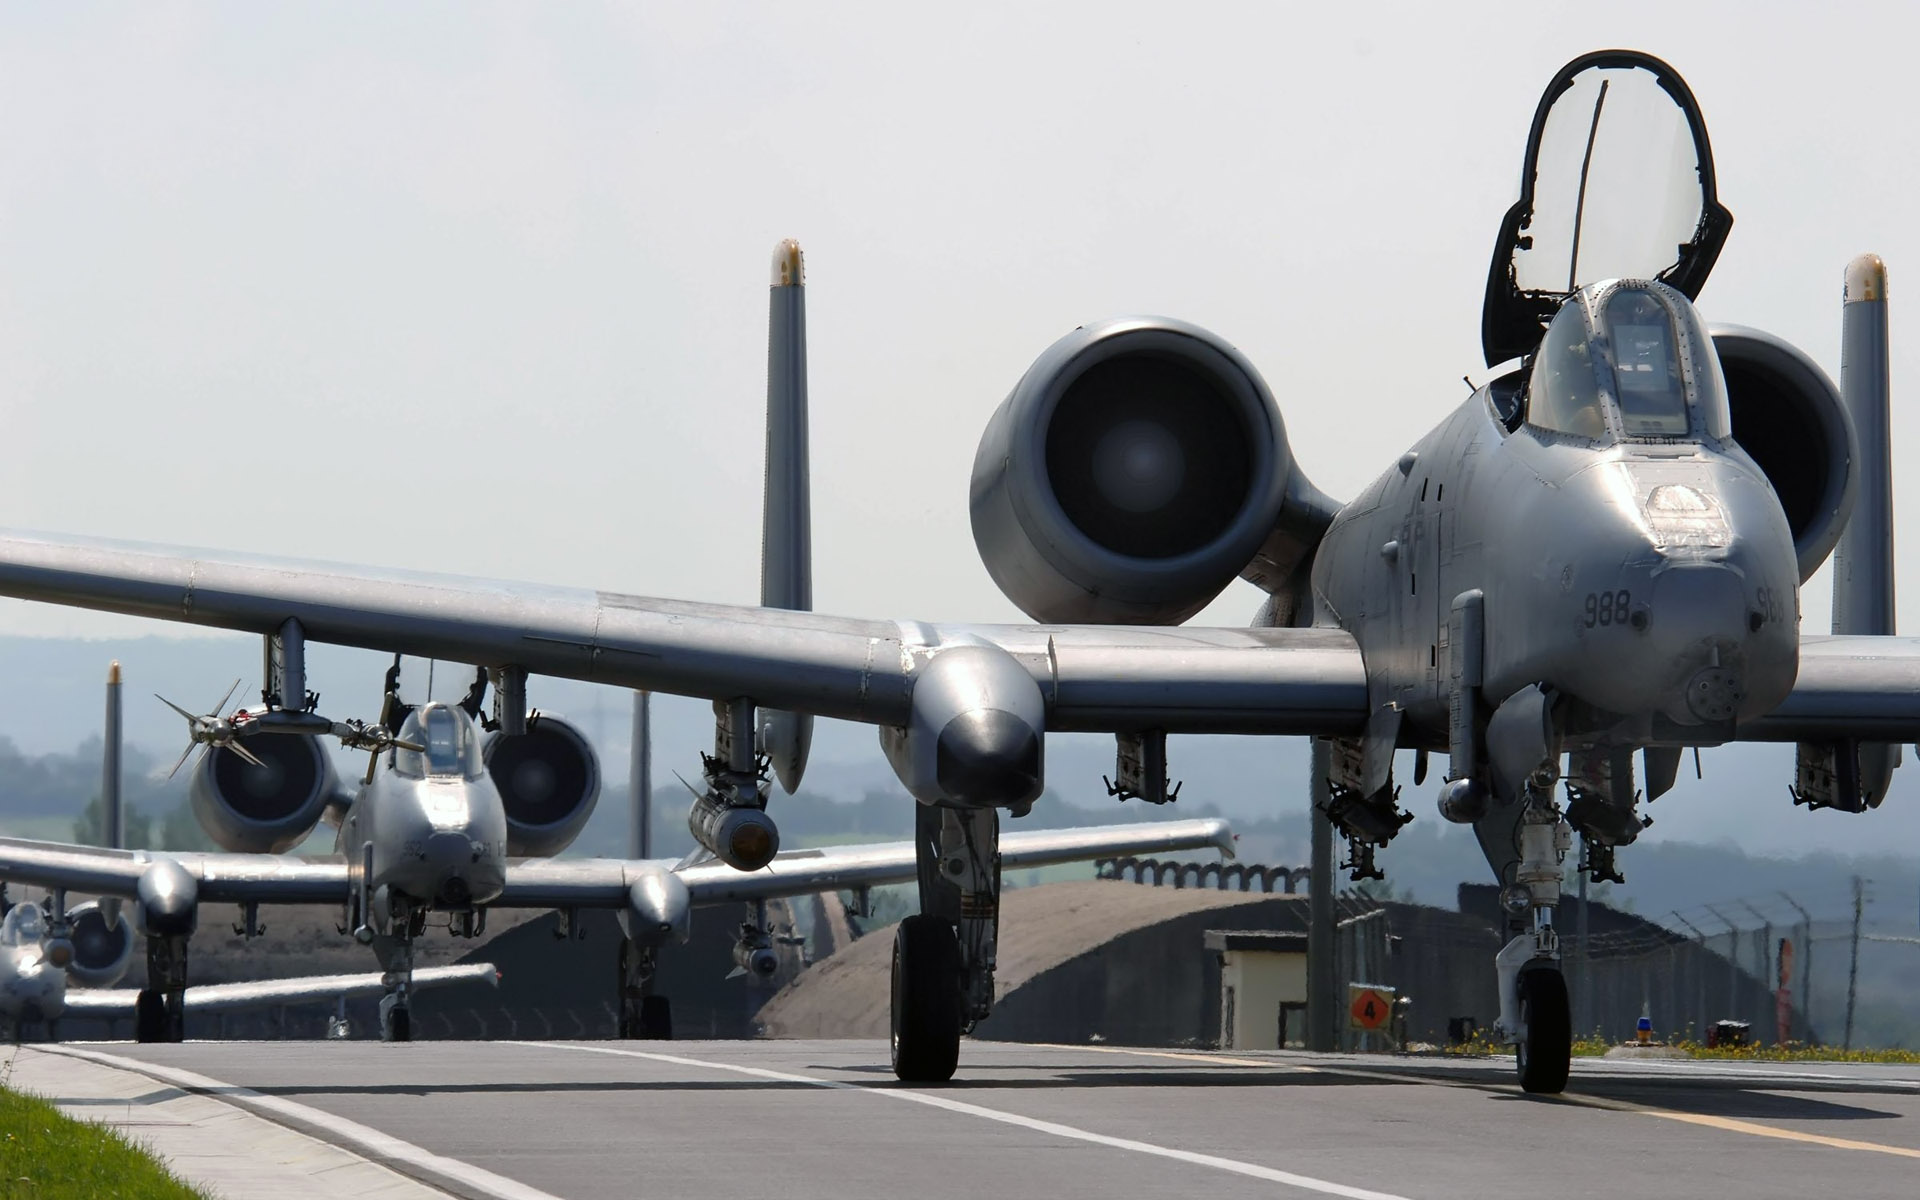 A 10 Thunderbolt II Aircrafts 213.49 Kb